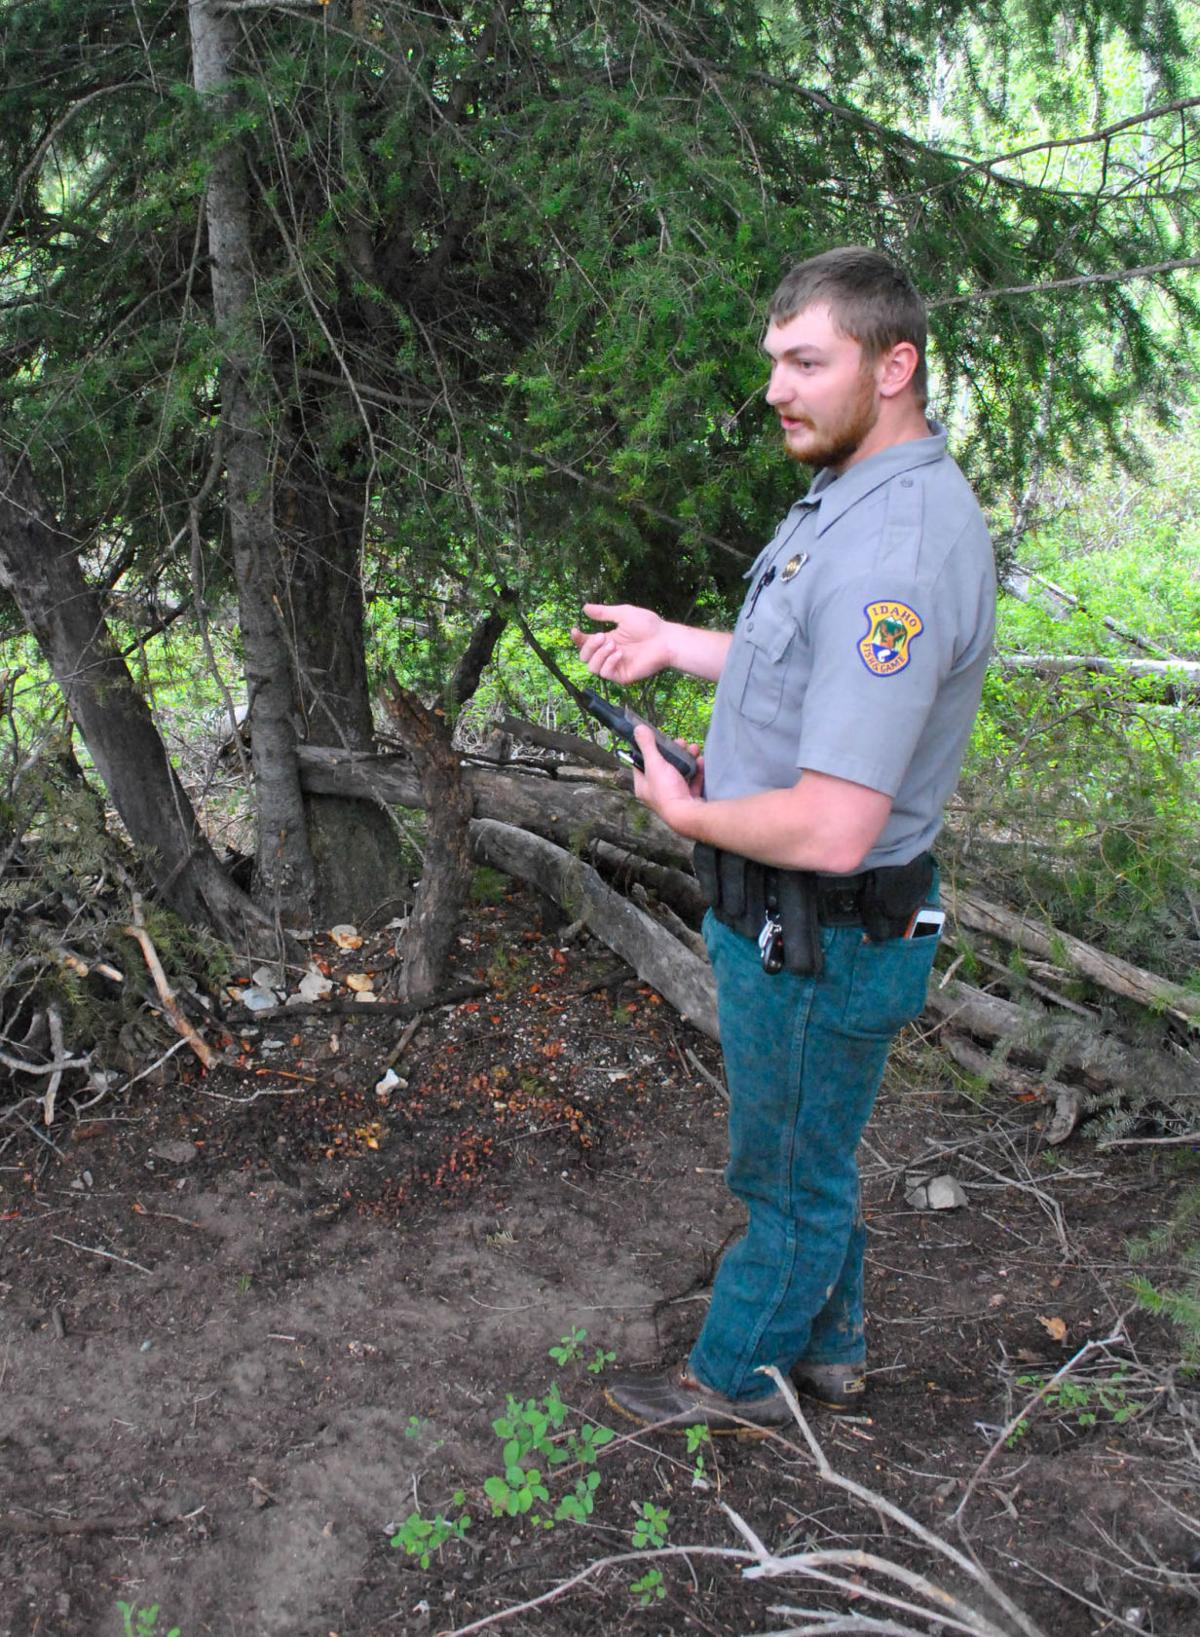 Bear baiting patrol uncovers violations outdoors and for Idaho dept of fish and game